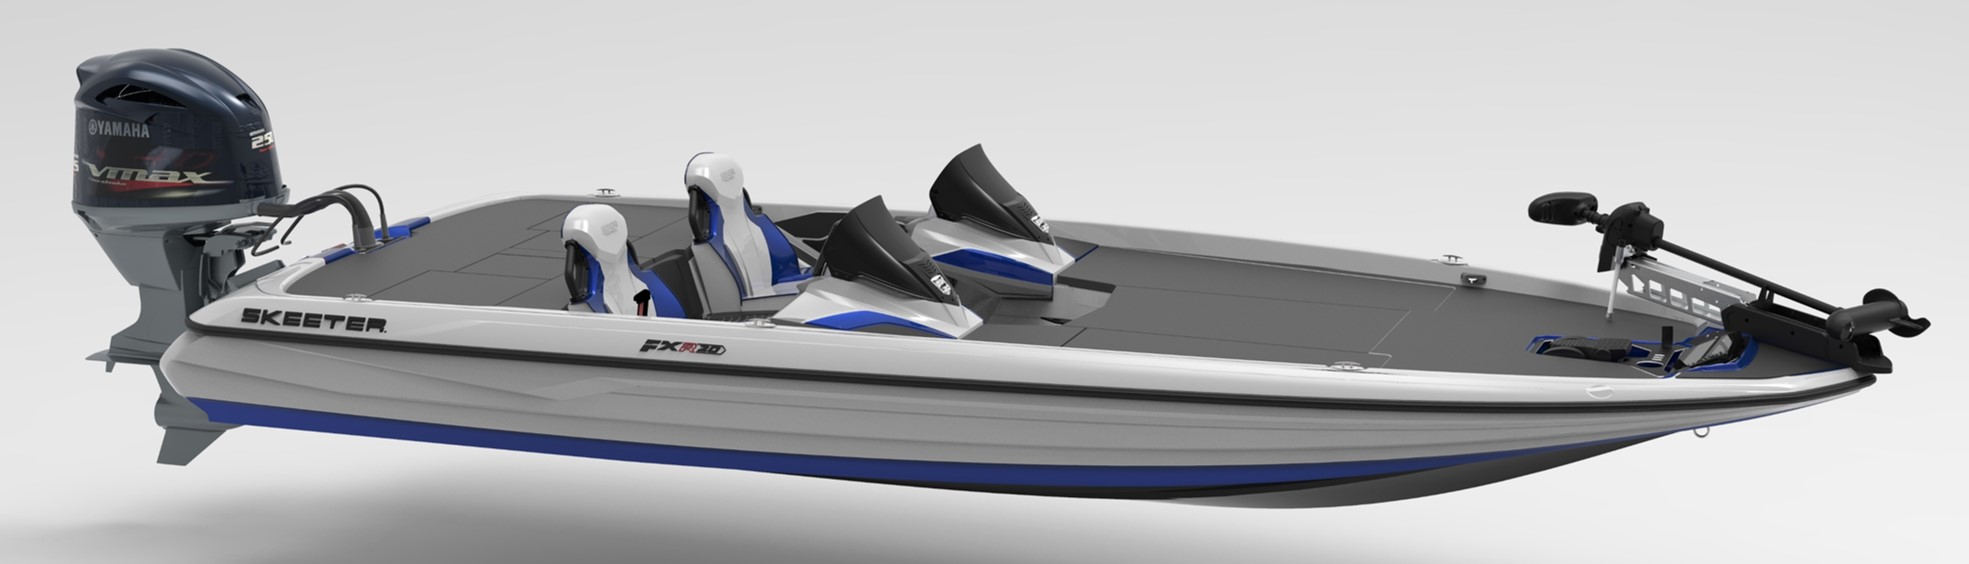 2021 SKEETER FXR21 Limited (On order, secure yours today!)